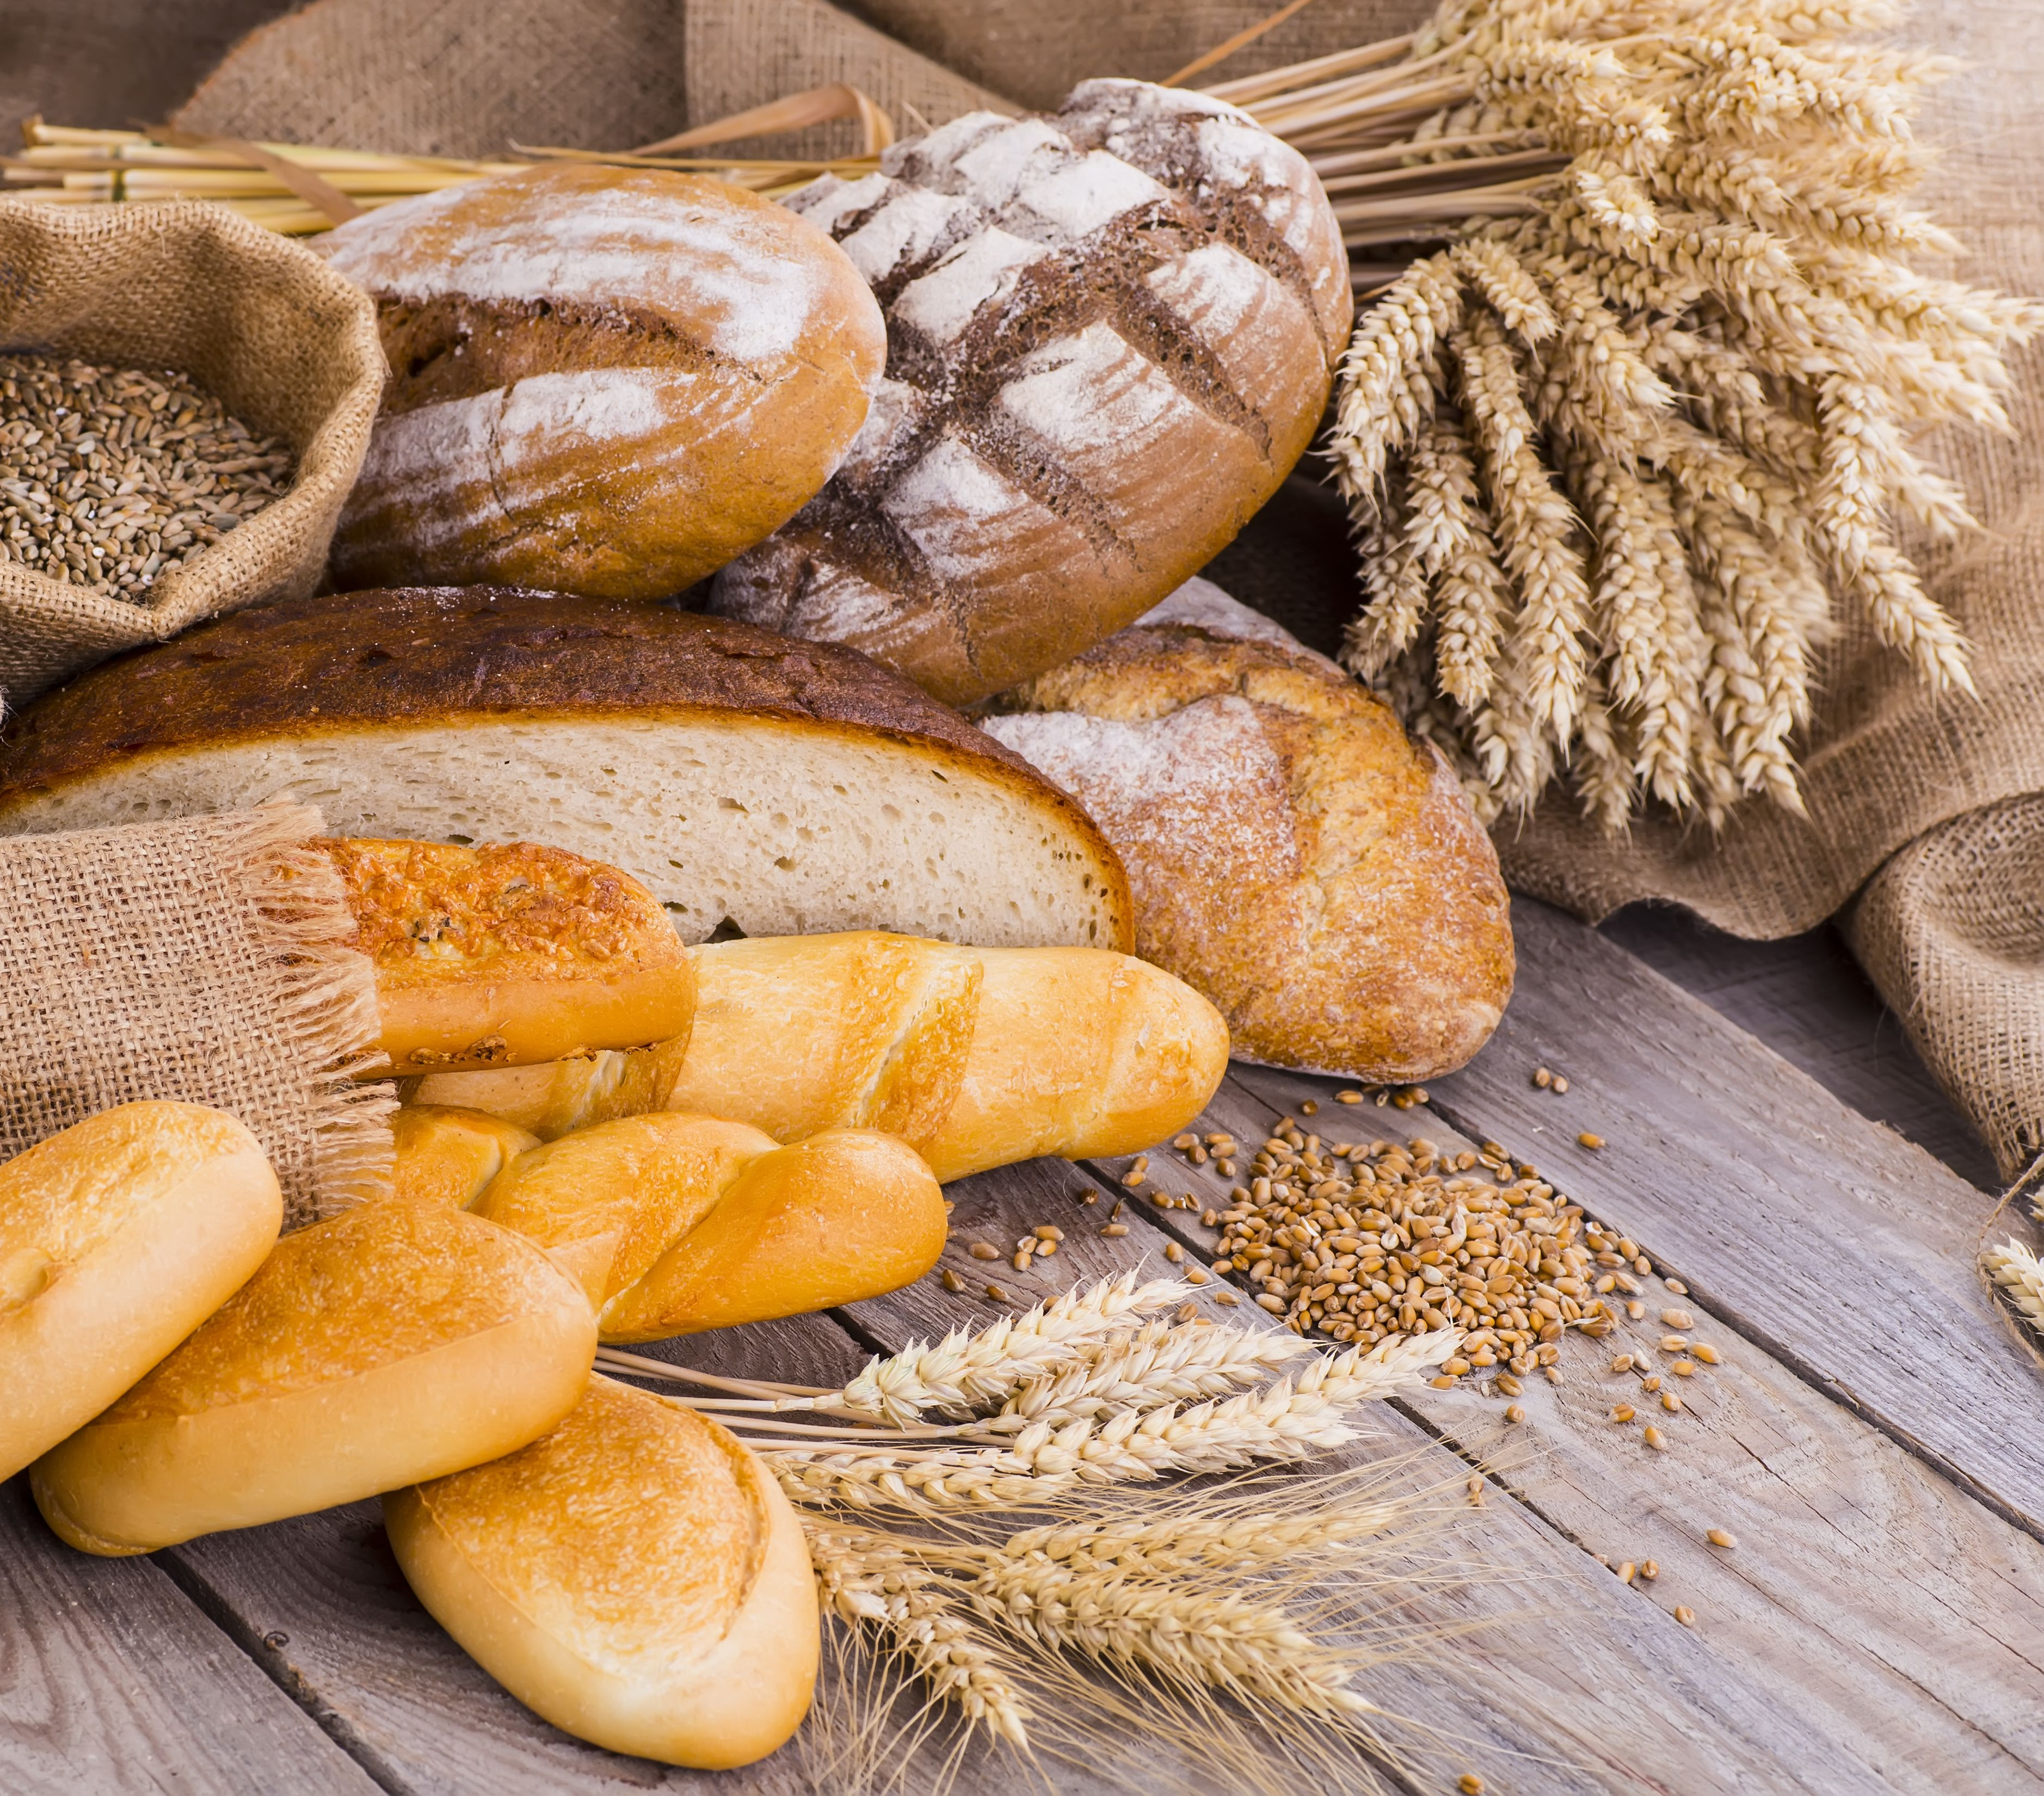 WHOLE GRAINS are rich in biotin along with iron, zinc and